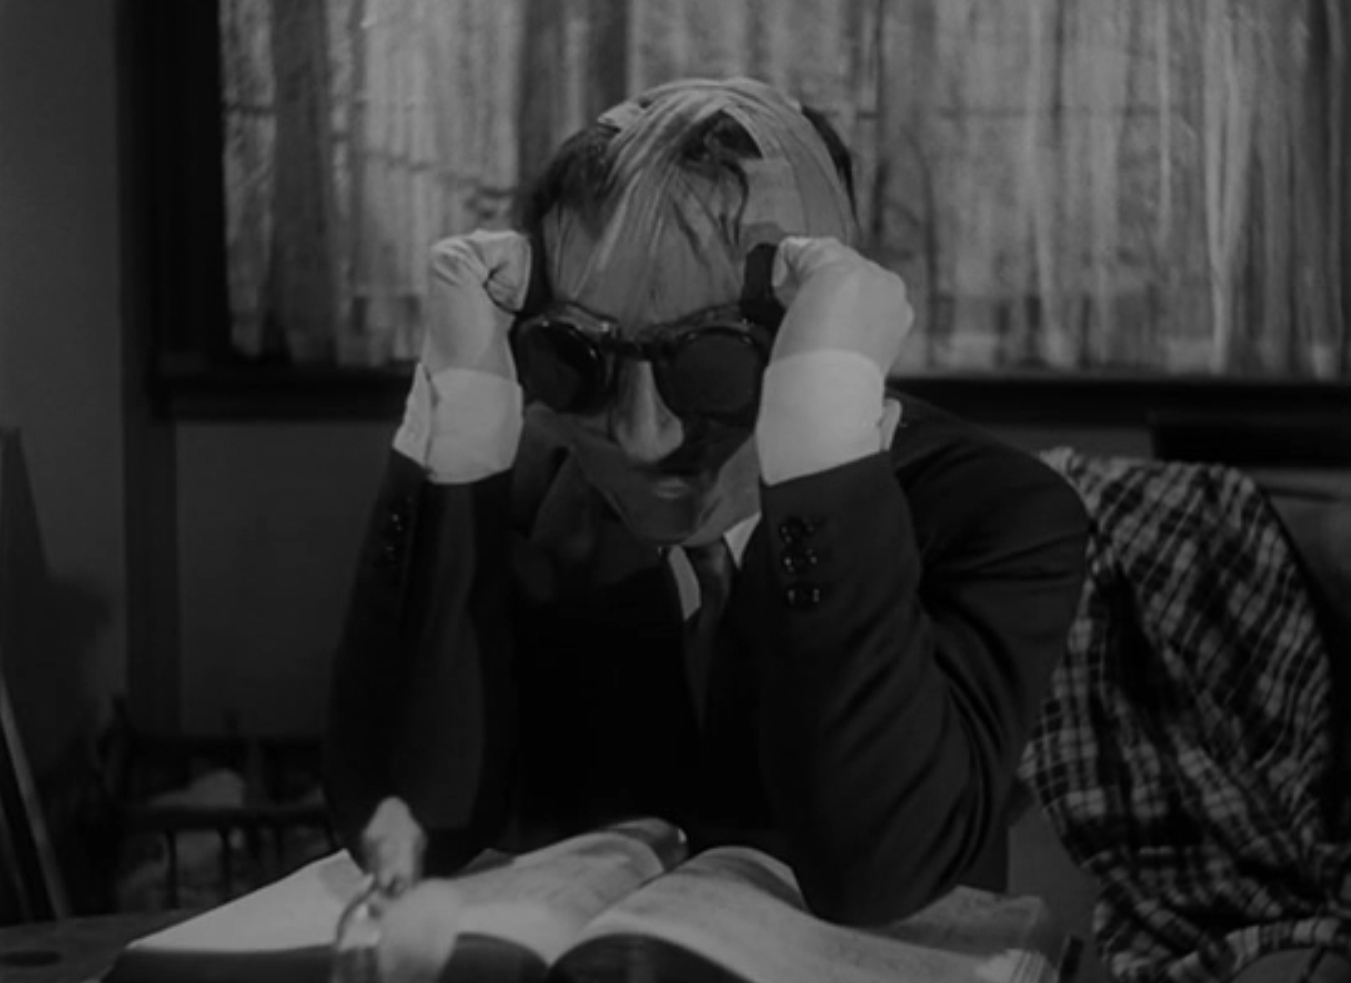 the invisible man review claude rains and gloria invisibleman9 middot invisibleman7 middot invisibleman16